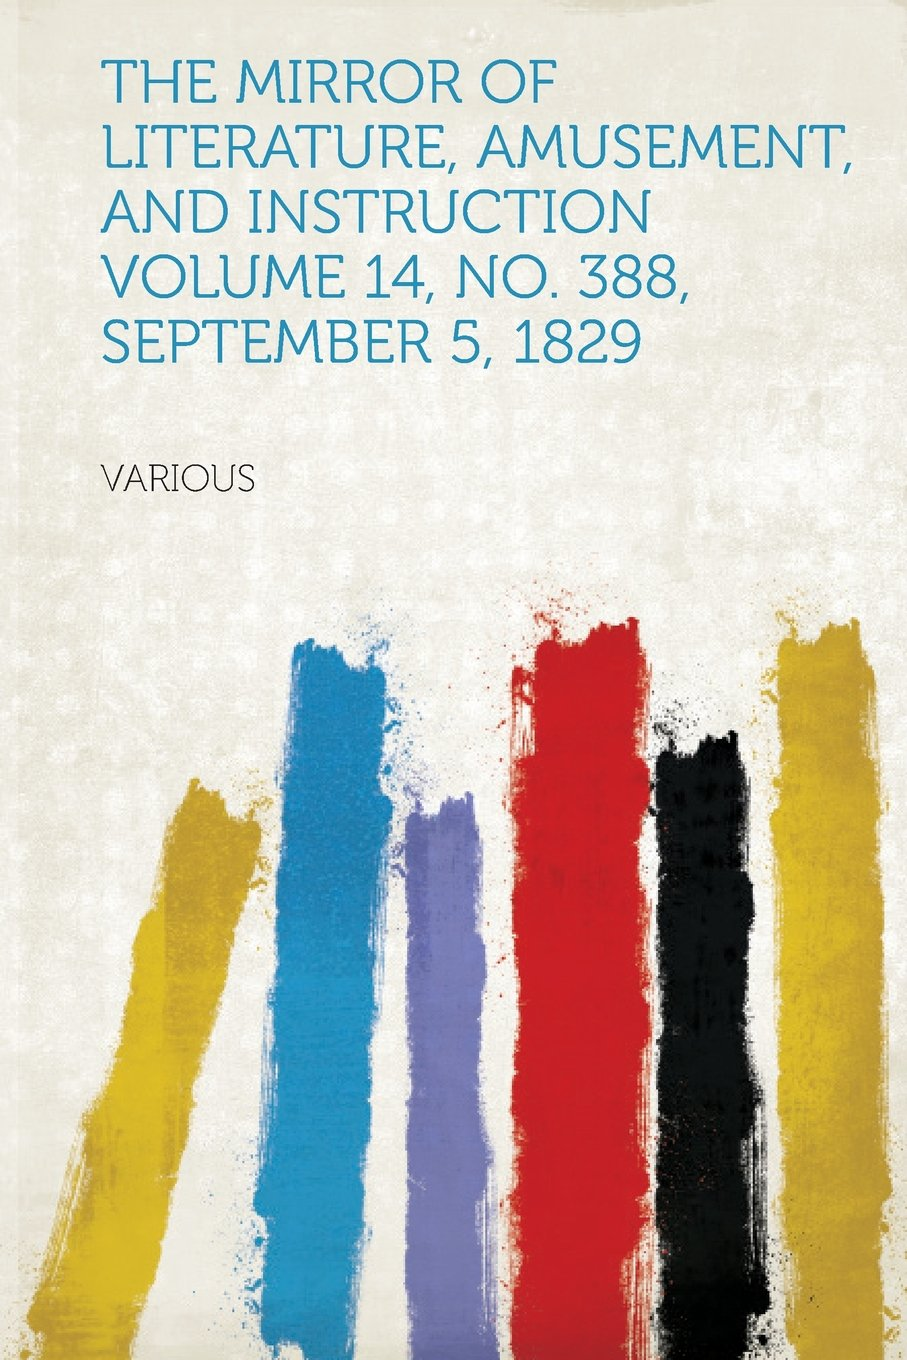 Download The Mirror of Literature, Amusement, and Instruction Volume 14, No. 388, September 5, 1829 ebook